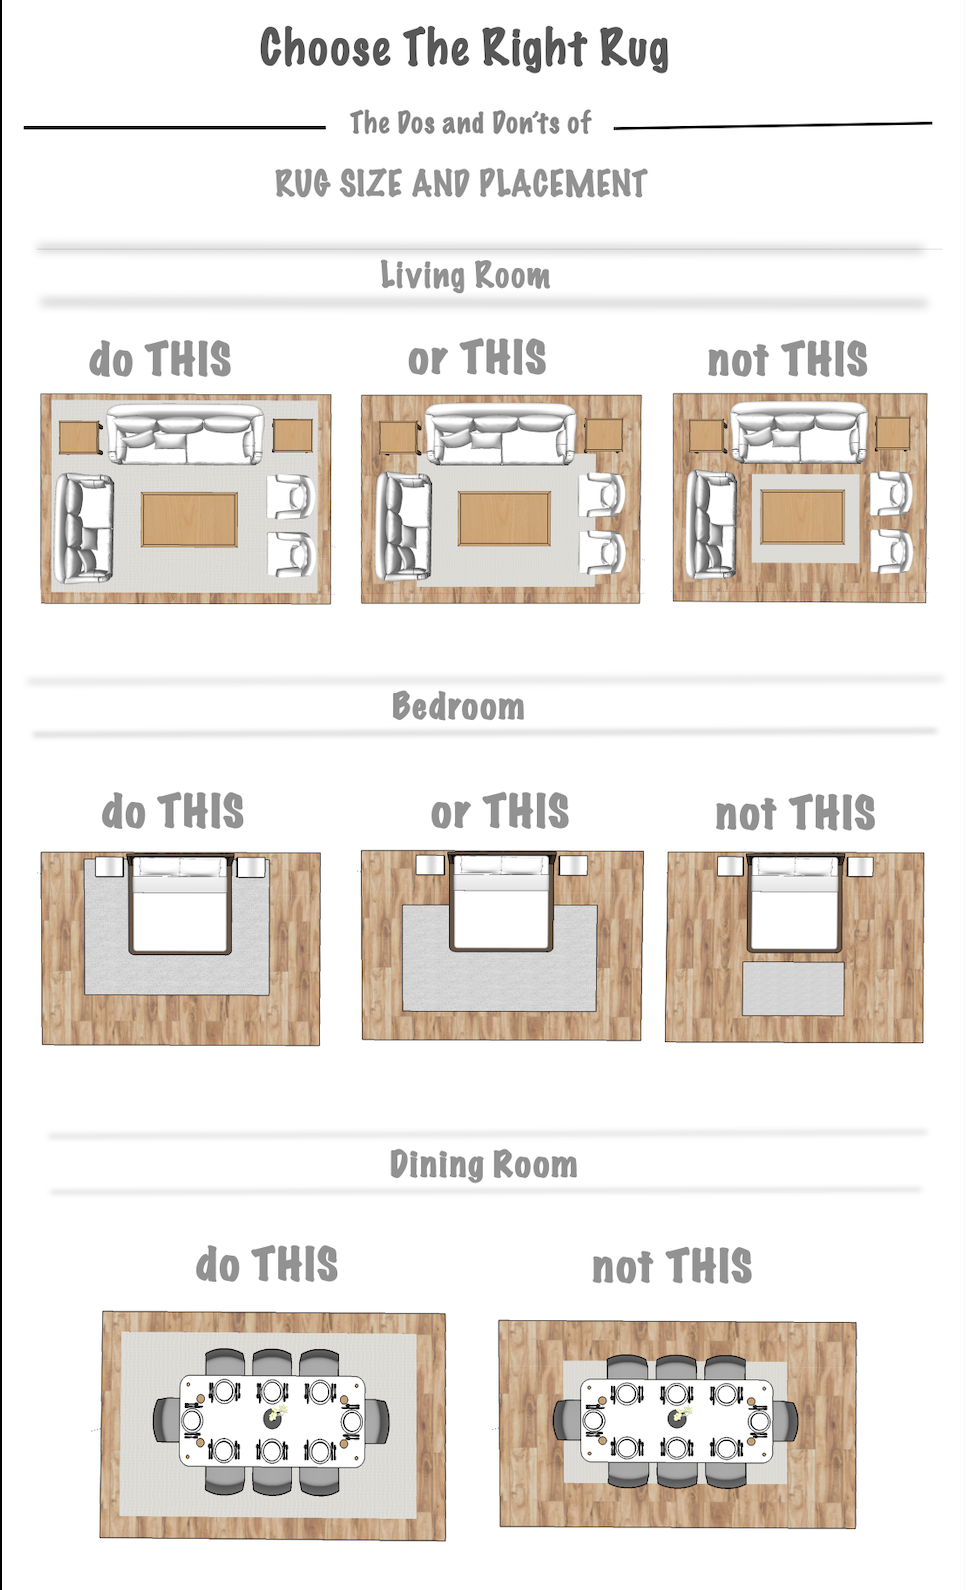 Chose The Right Rug The Dos And Don Ts Of Rug Size And Placement Choosing A Rug Can Be A Difficult Task A Good R Perfect Rug Apartment Checklist Cool Rugs #standard #living #room #rug #size